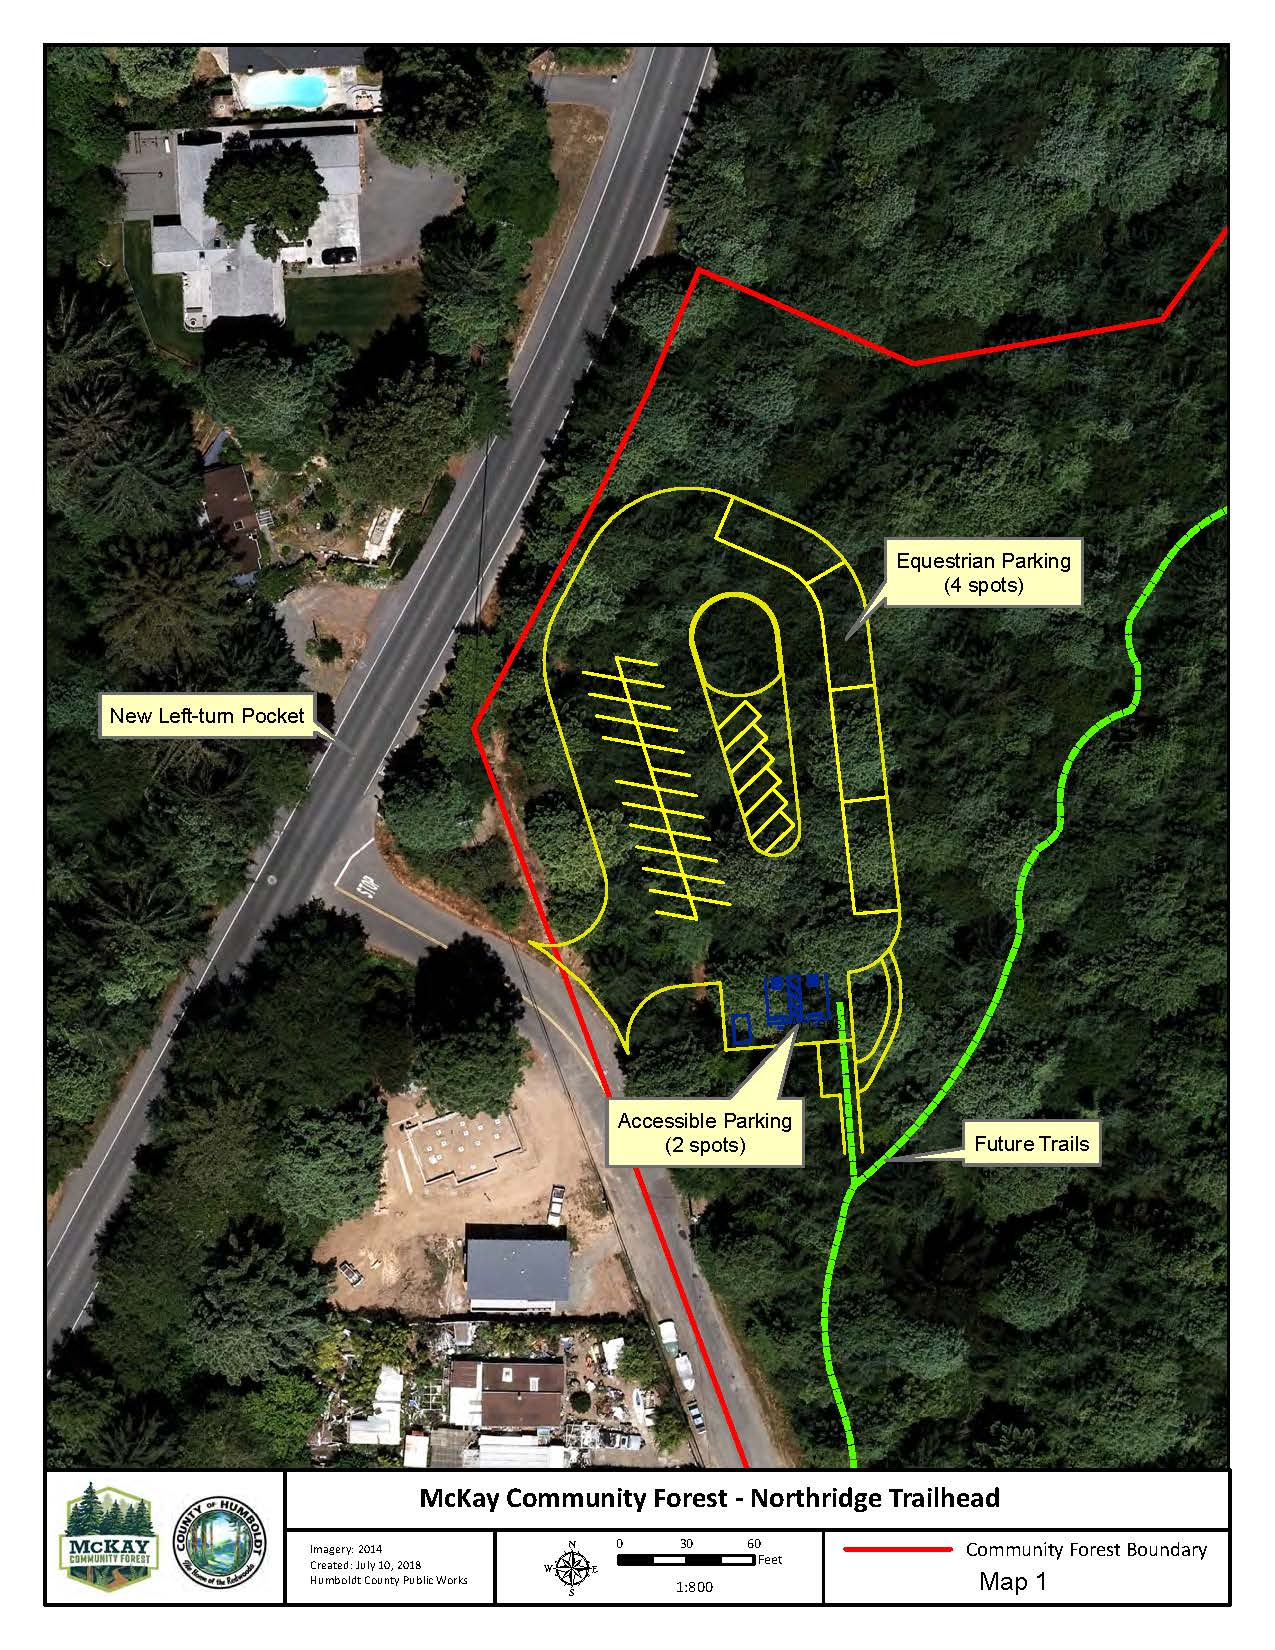 McKay Community Forest Map showing drawing of future parking lot off Walnut Drive with equestrian pa